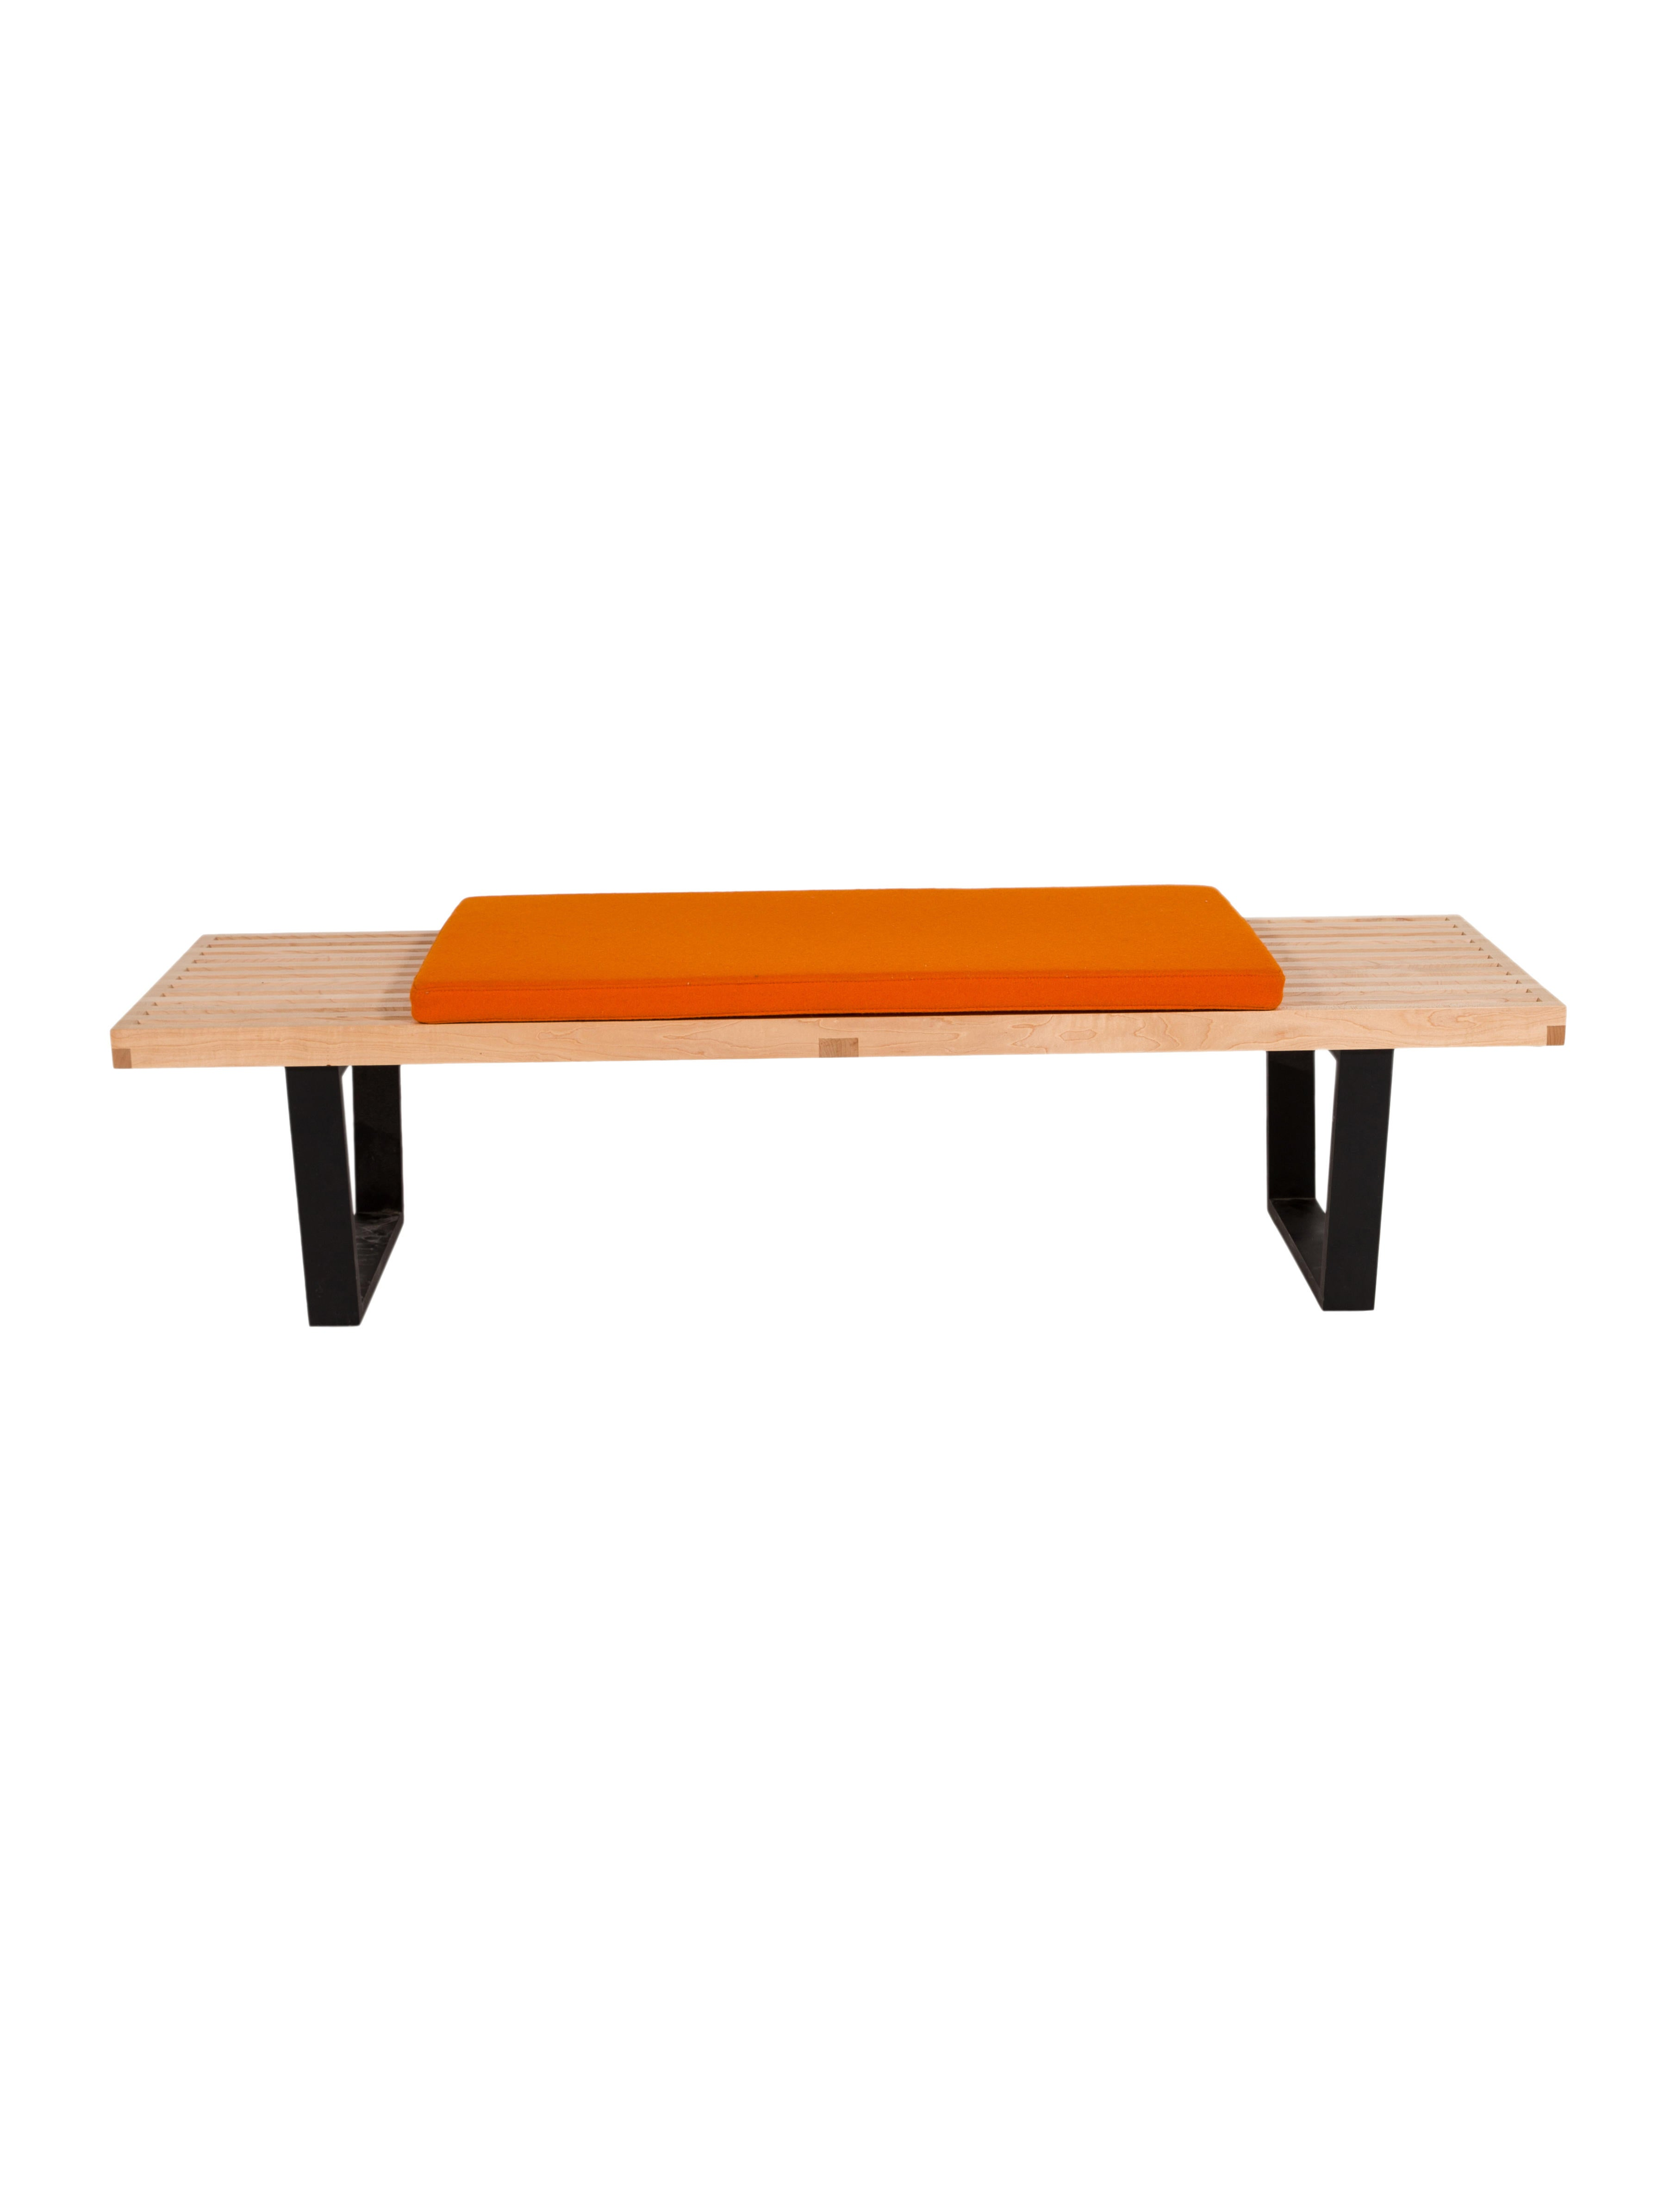 topic related table to plywood molded nelson vintage surfboard miller herman at eames base ebay noguchi slat metal revit coffee early by gal replica swoop george bench